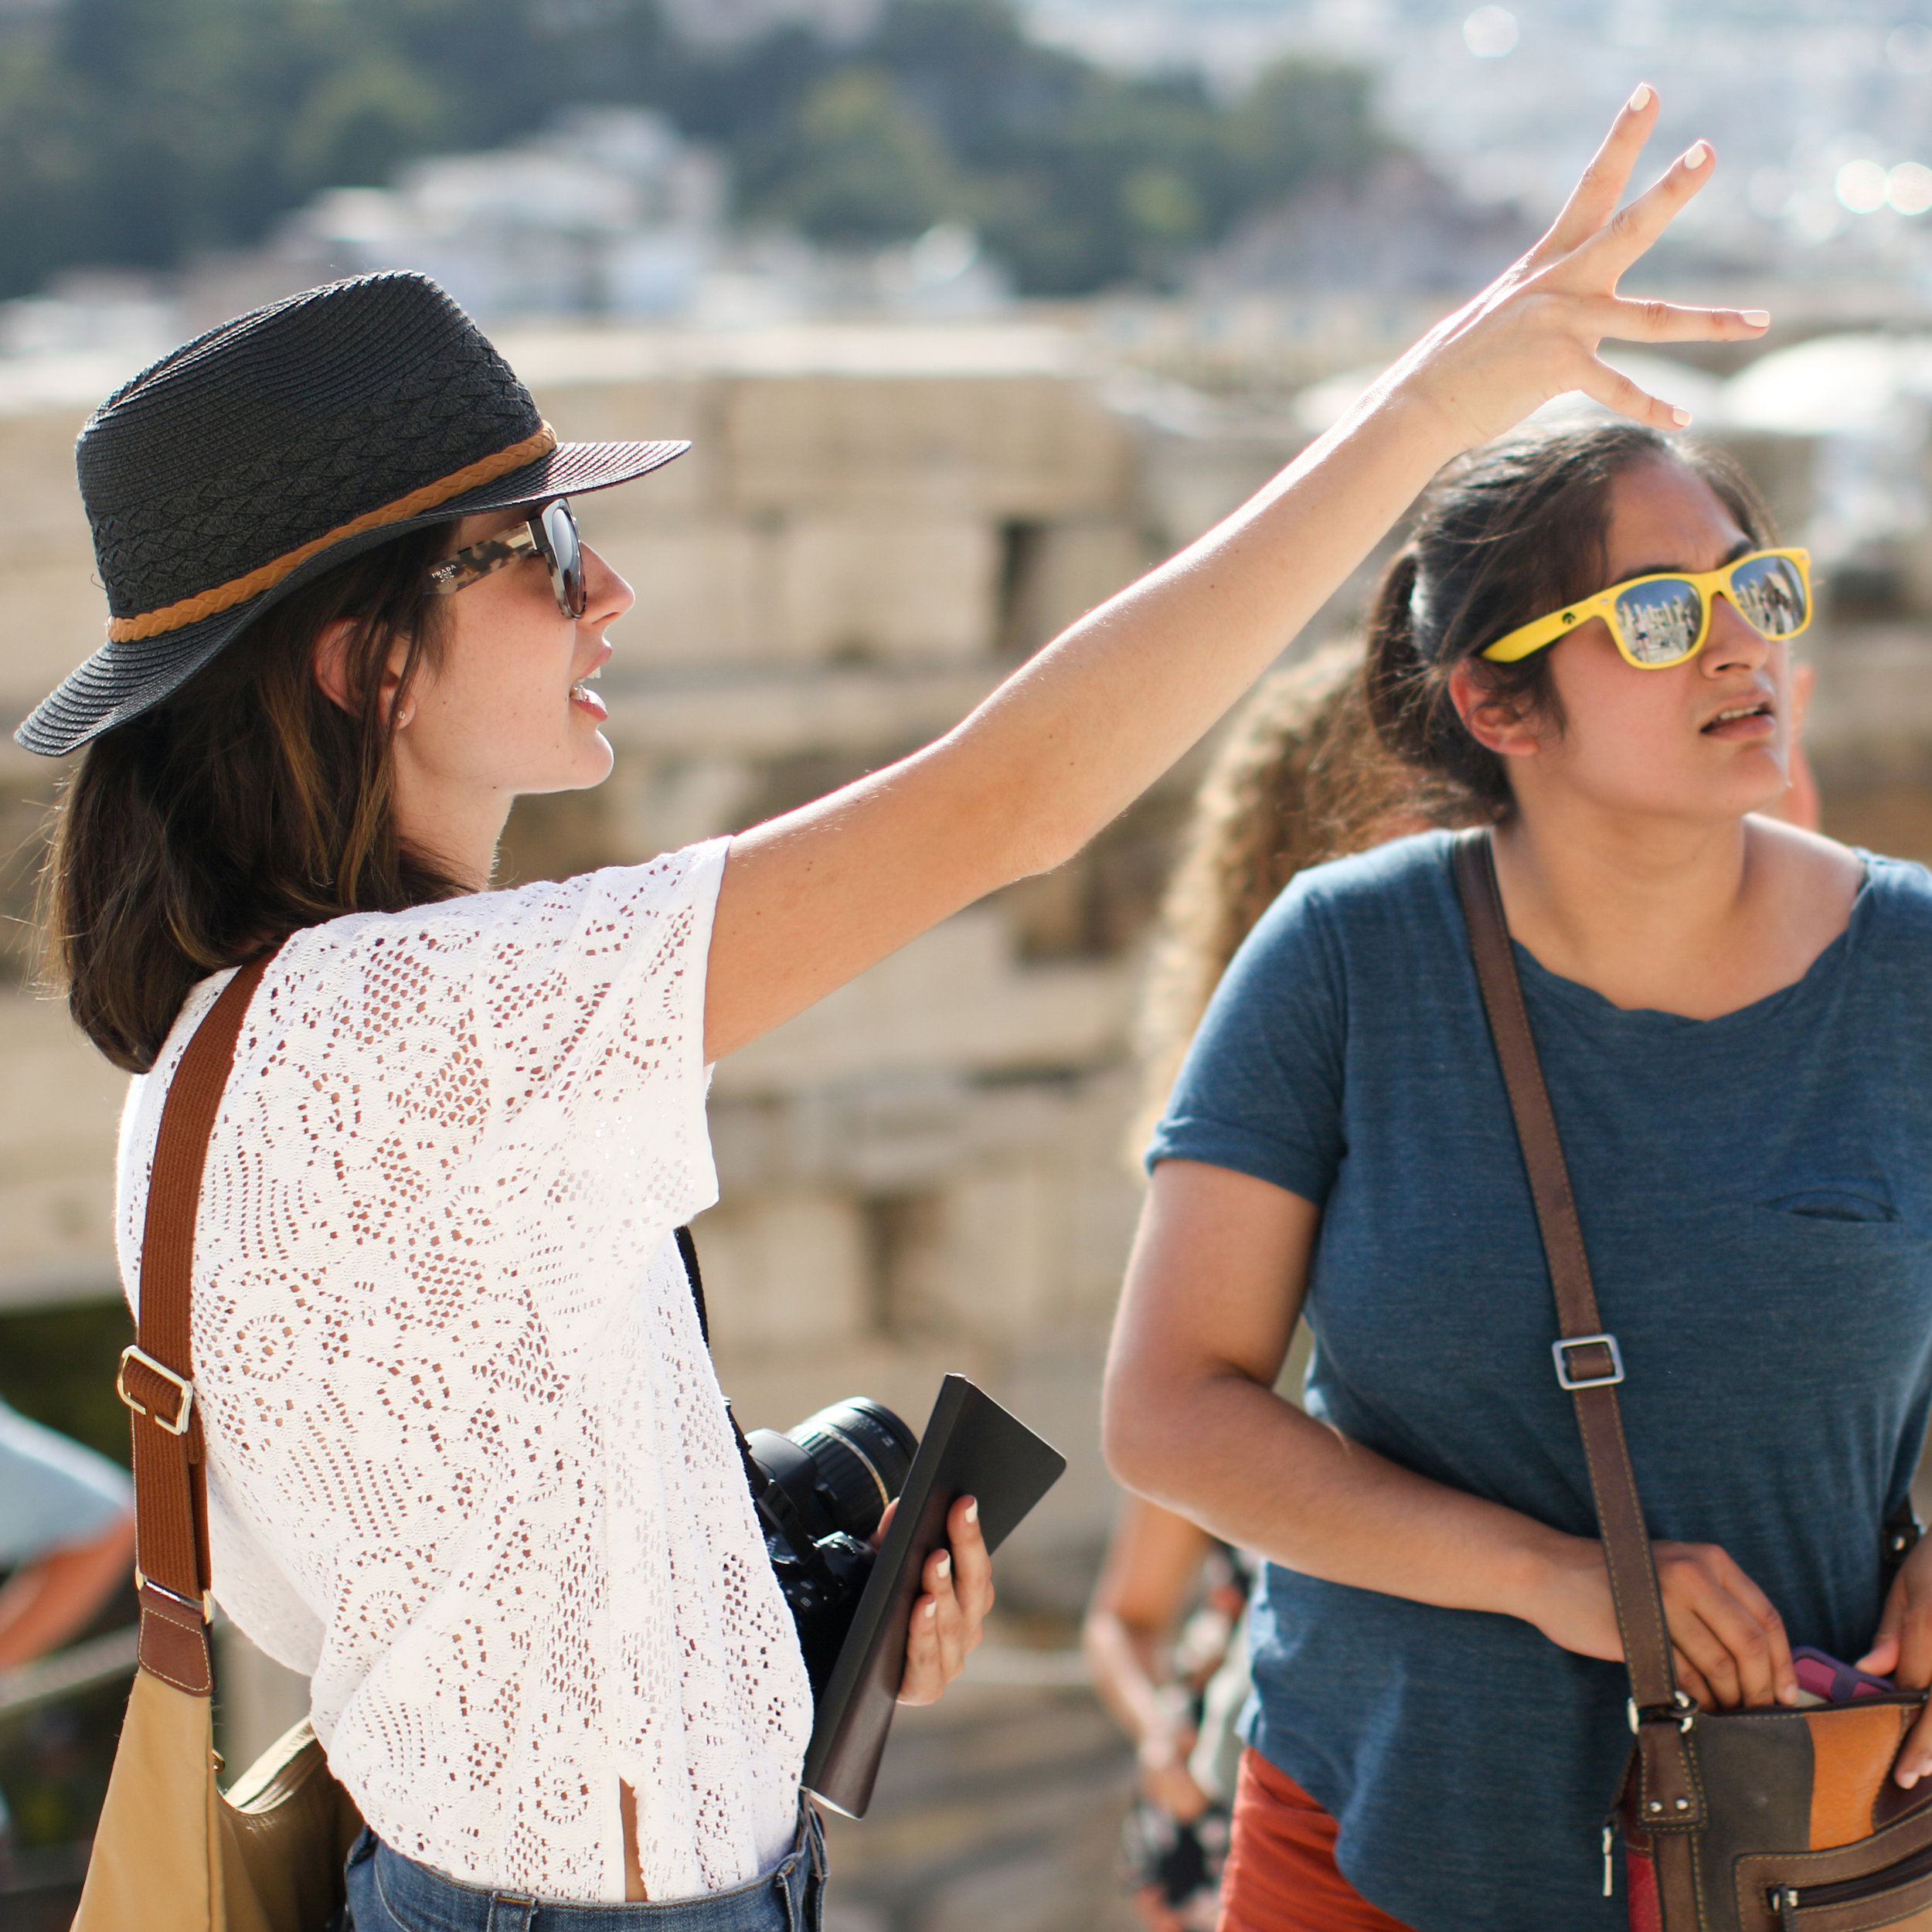 A HellaTravels gives a private tour of the acropolis in Athens to one of our solo female travelers on a Greece tour.